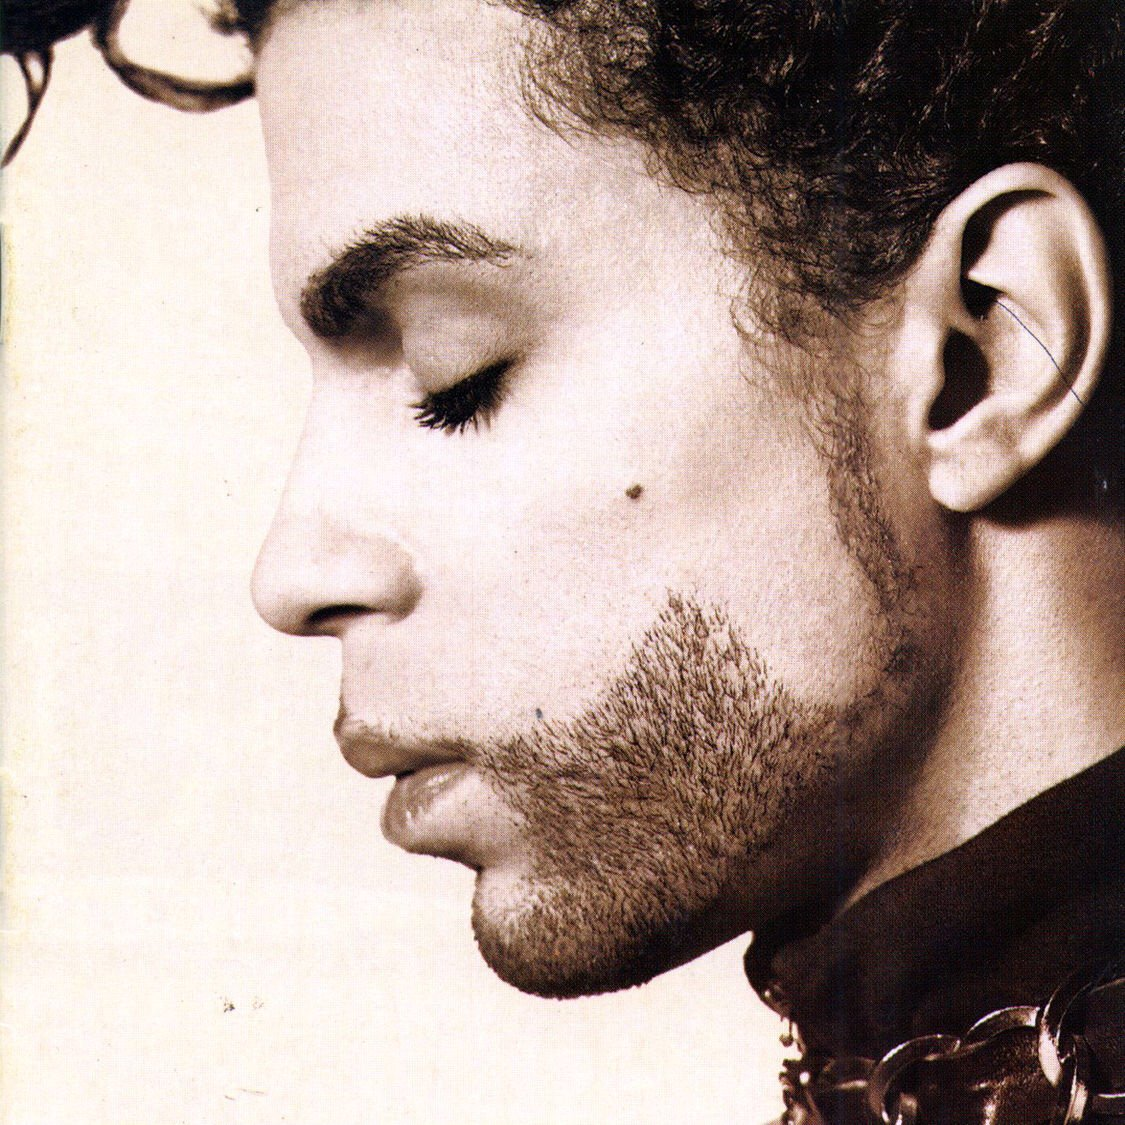 """#nowplaying: """"Dirty Mind"""" from """"The Hits/The B-Sides (Disc 2)"""" by #Prince<br>http://pic.twitter.com/kT9NPGfwzW"""